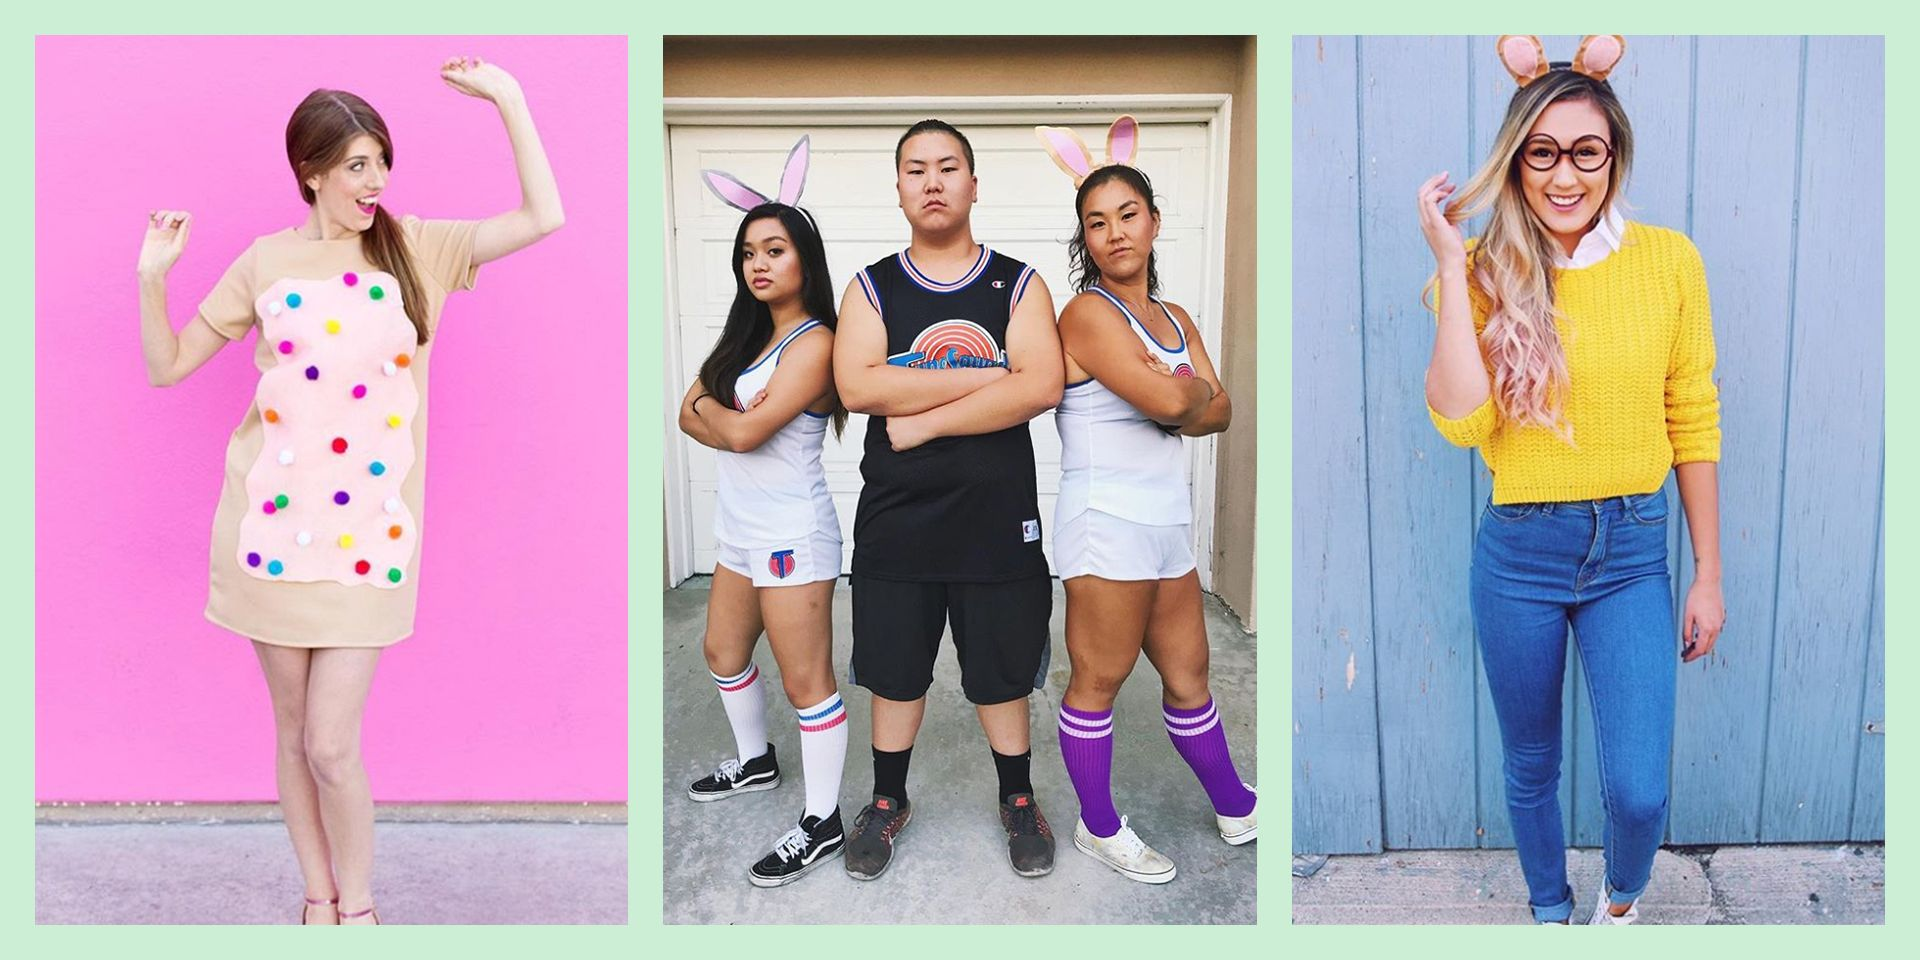 You probably know that from being a teenager yourself once. 36 Best Halloween Costume Ideas 2019 Cute Halloween Costumes